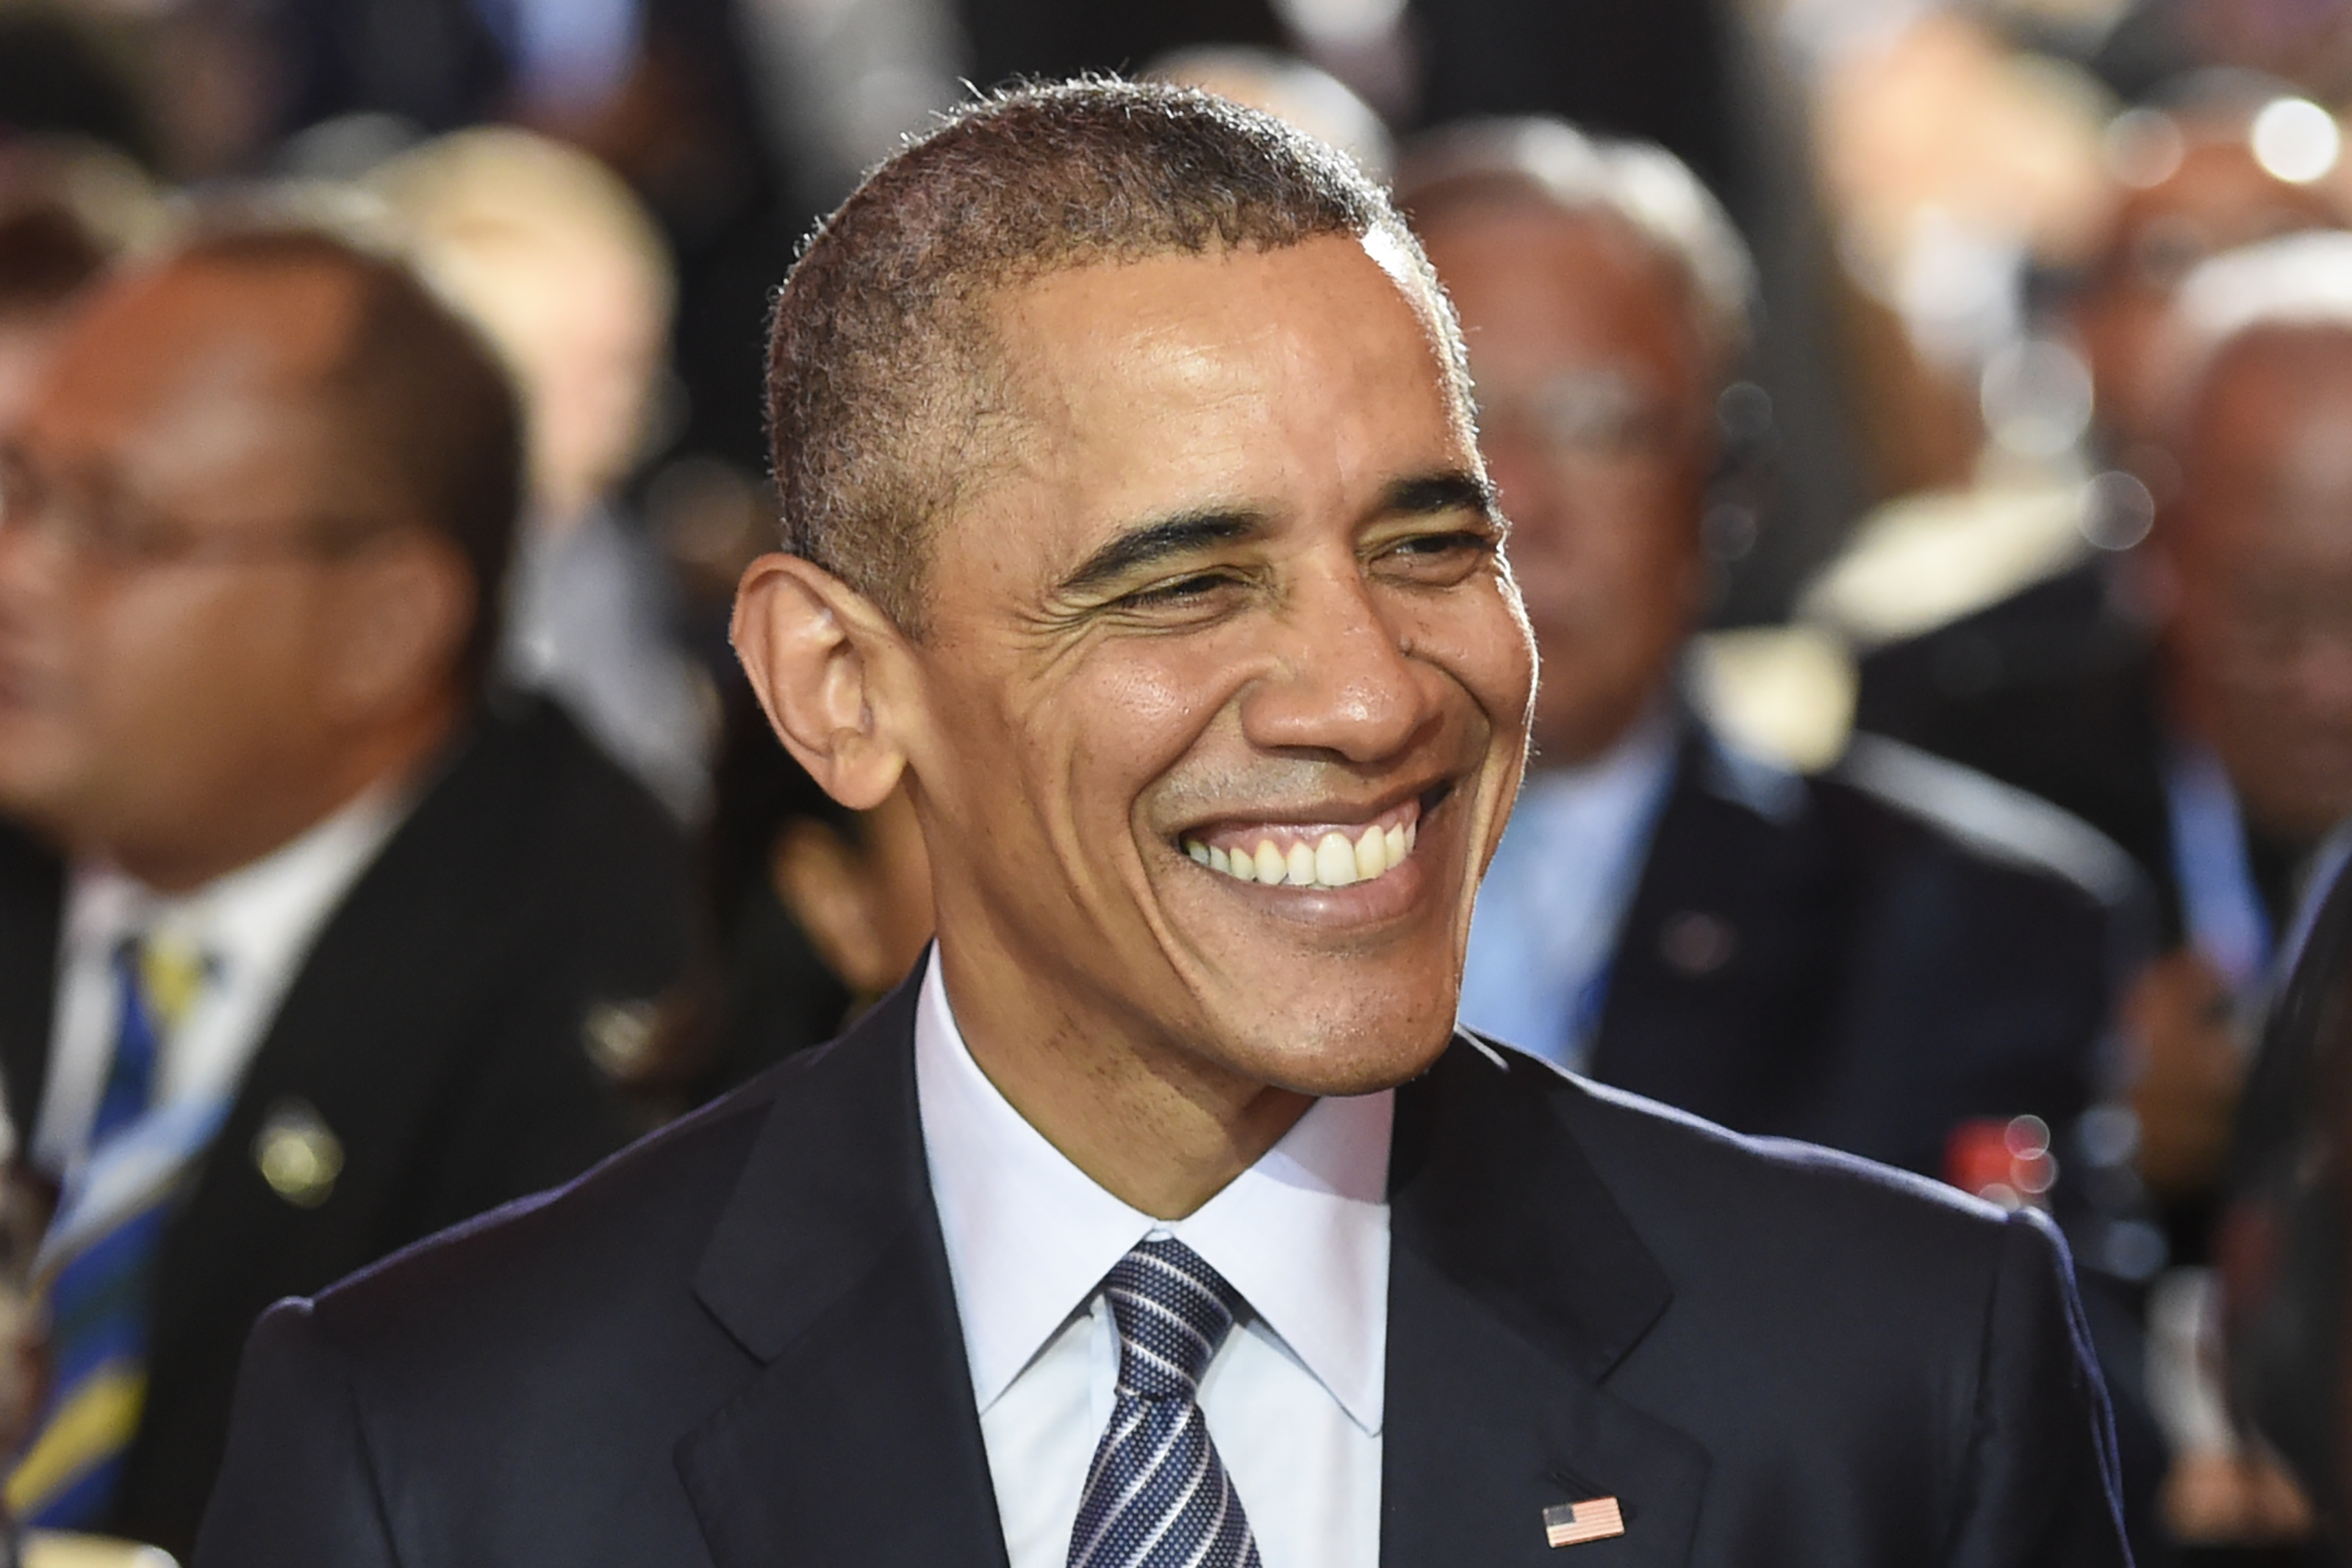 Obama Picks Fates And Furies As His Favorite Book Of 2015